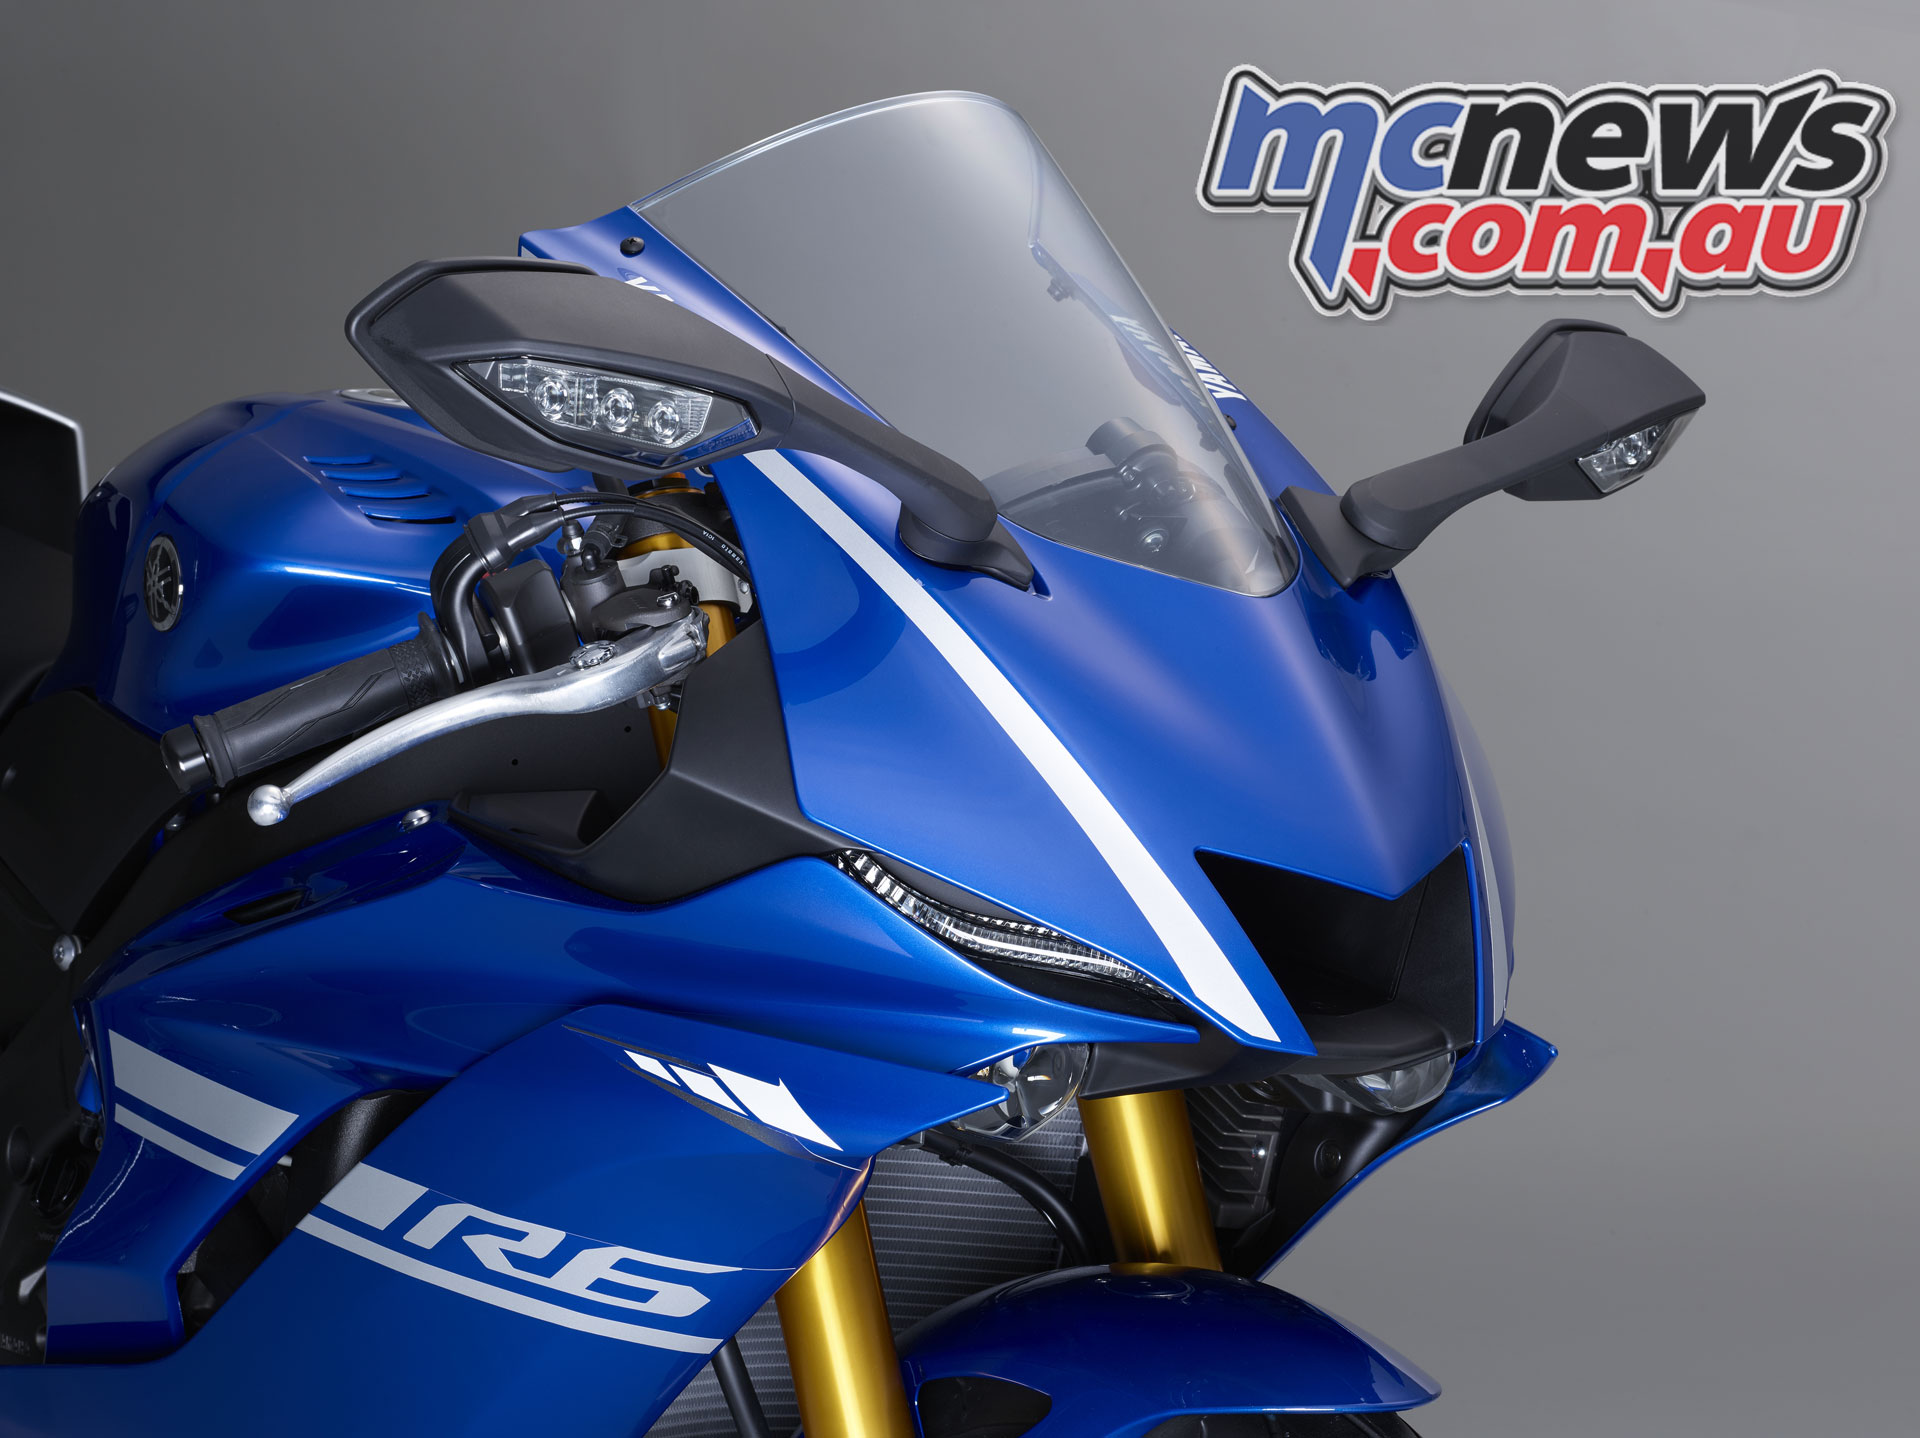 2017 Yamaha YZF-R6, with R1 inspired front fairing.